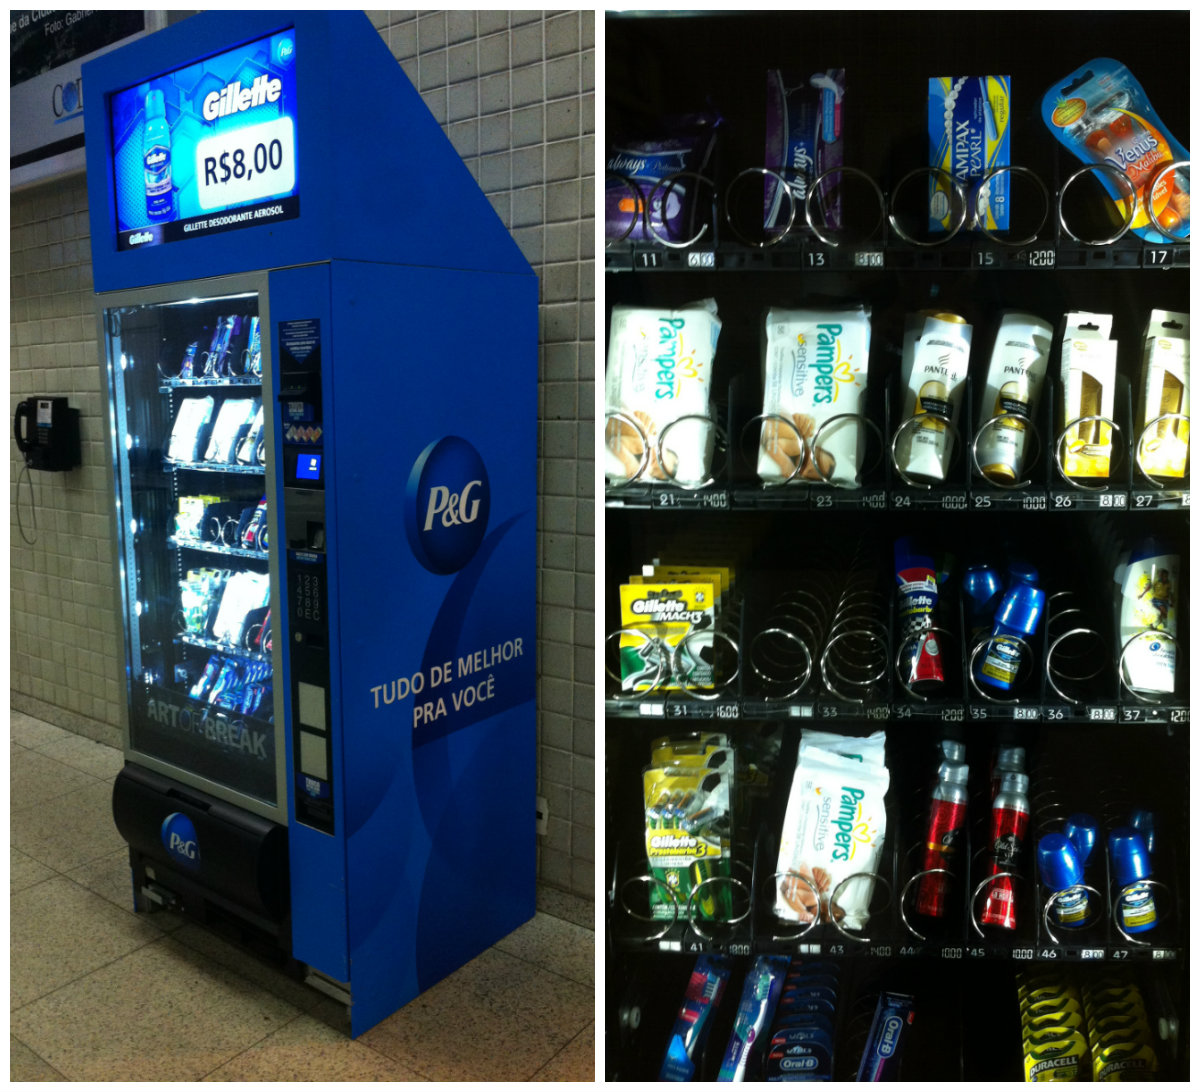 P&G, vending machine